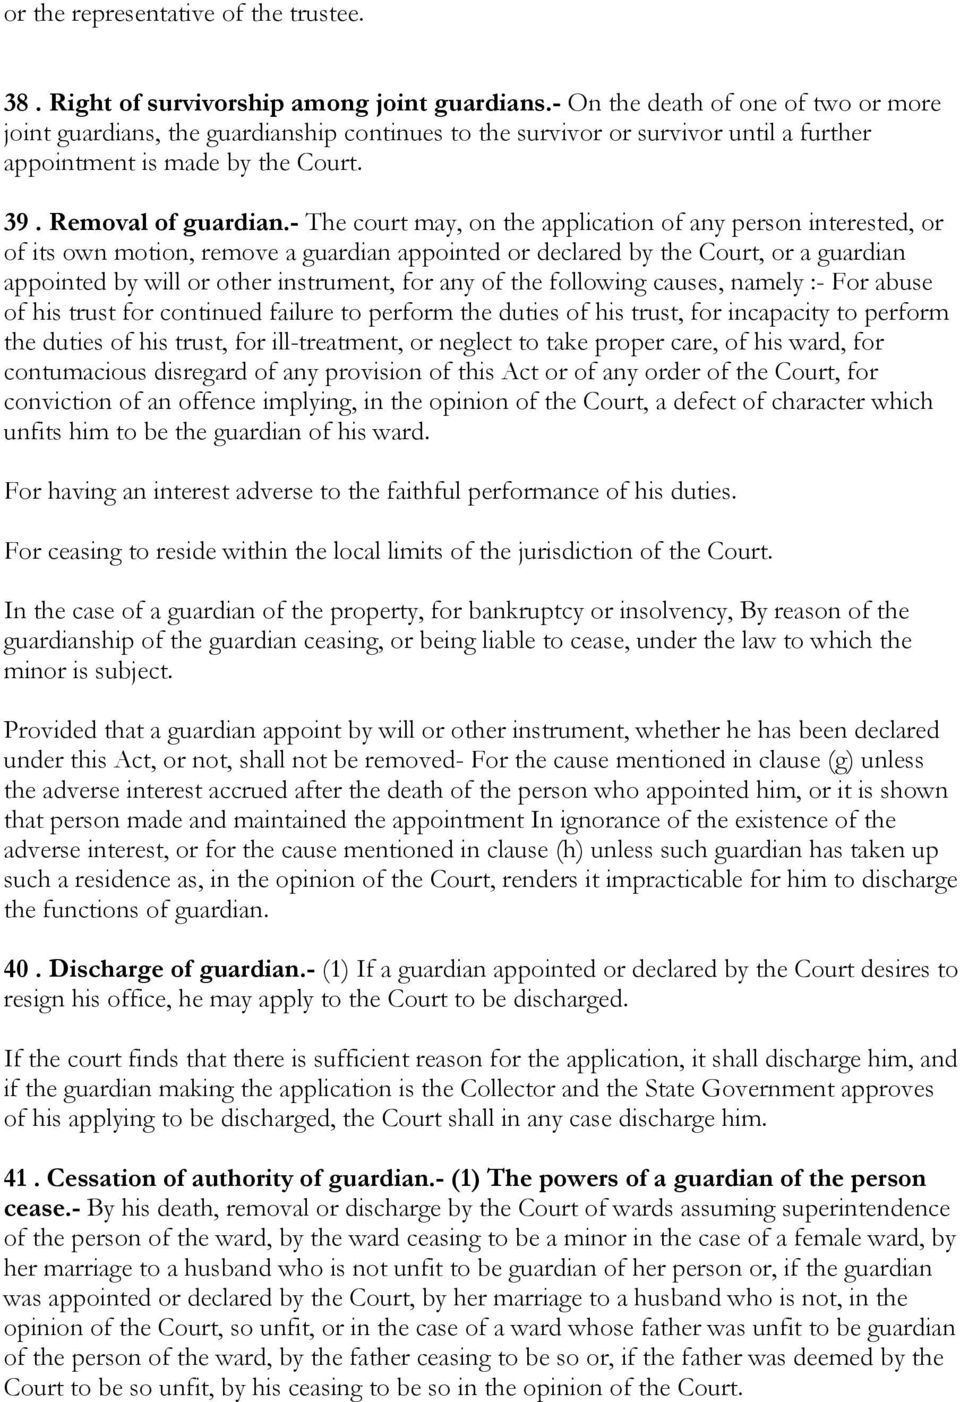 - The court may, on the application of any person interested, or of its own motion, remove a guardian appointed or declared by the Court, or a guardian appointed by will or other instrument, for any